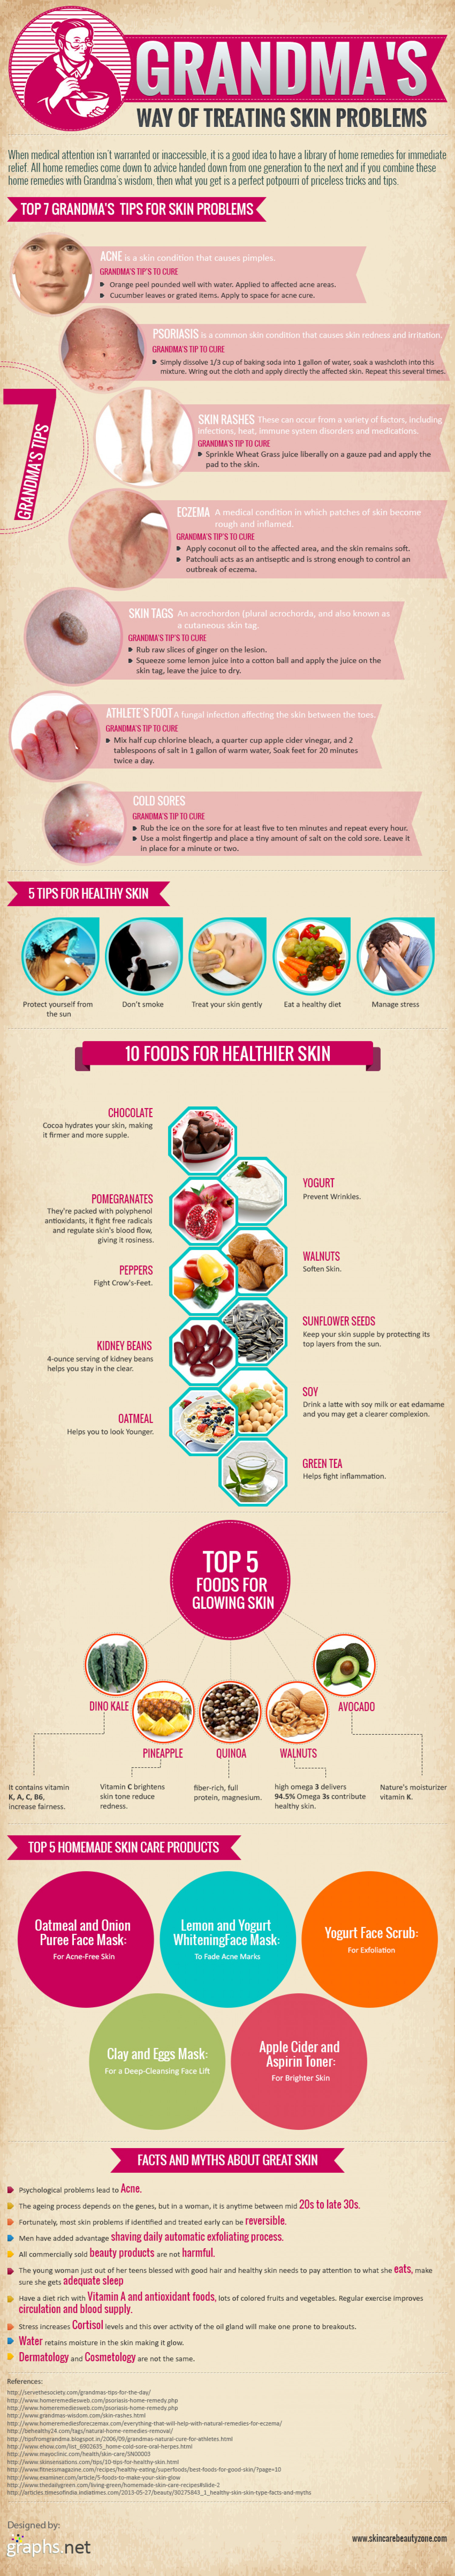 Grandma's Way of Treating Skin Problems (infographic) Infographic